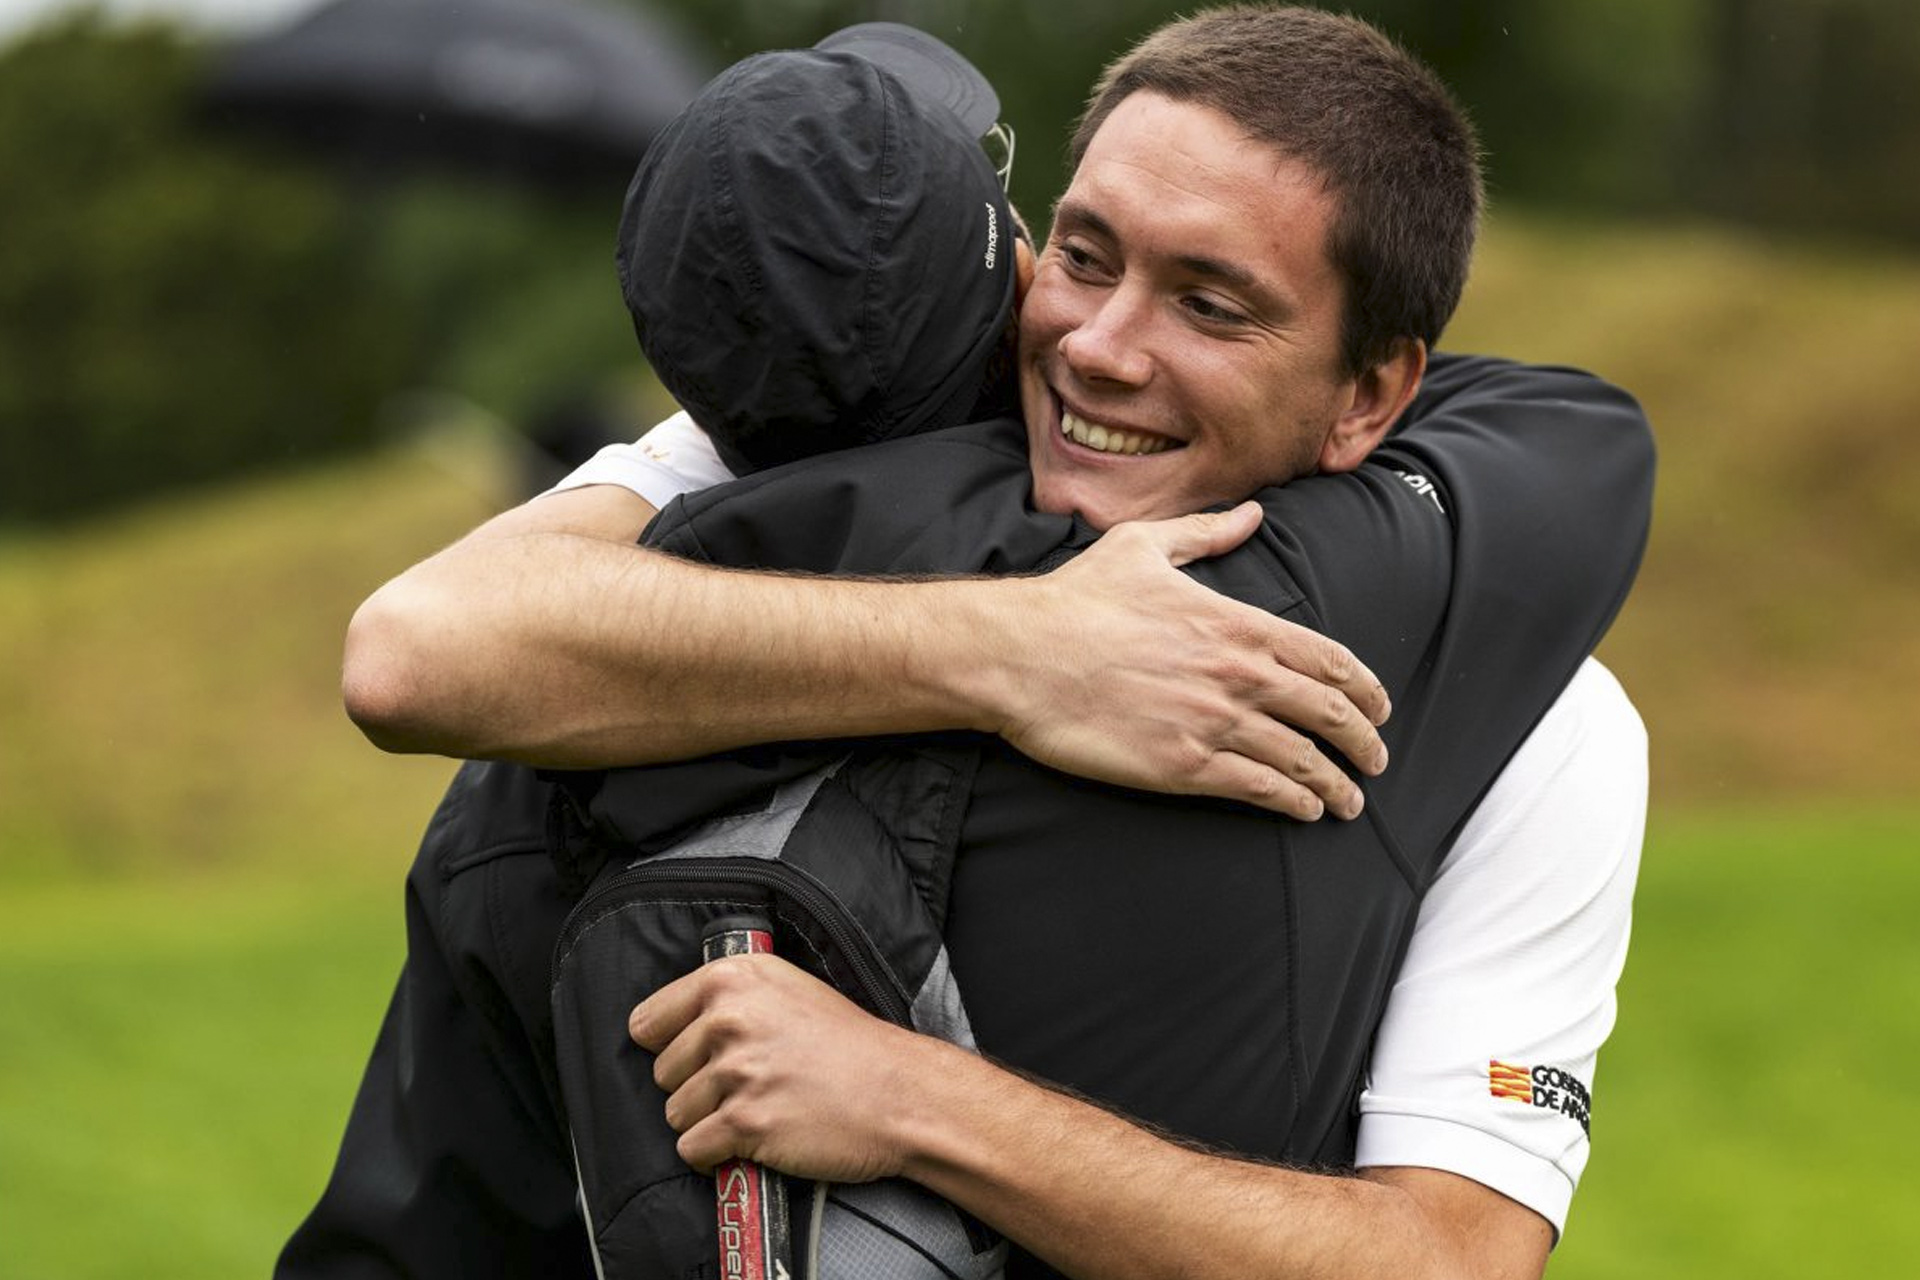 La final internacional del Audi quattro Cup DUO produce una historia memorable